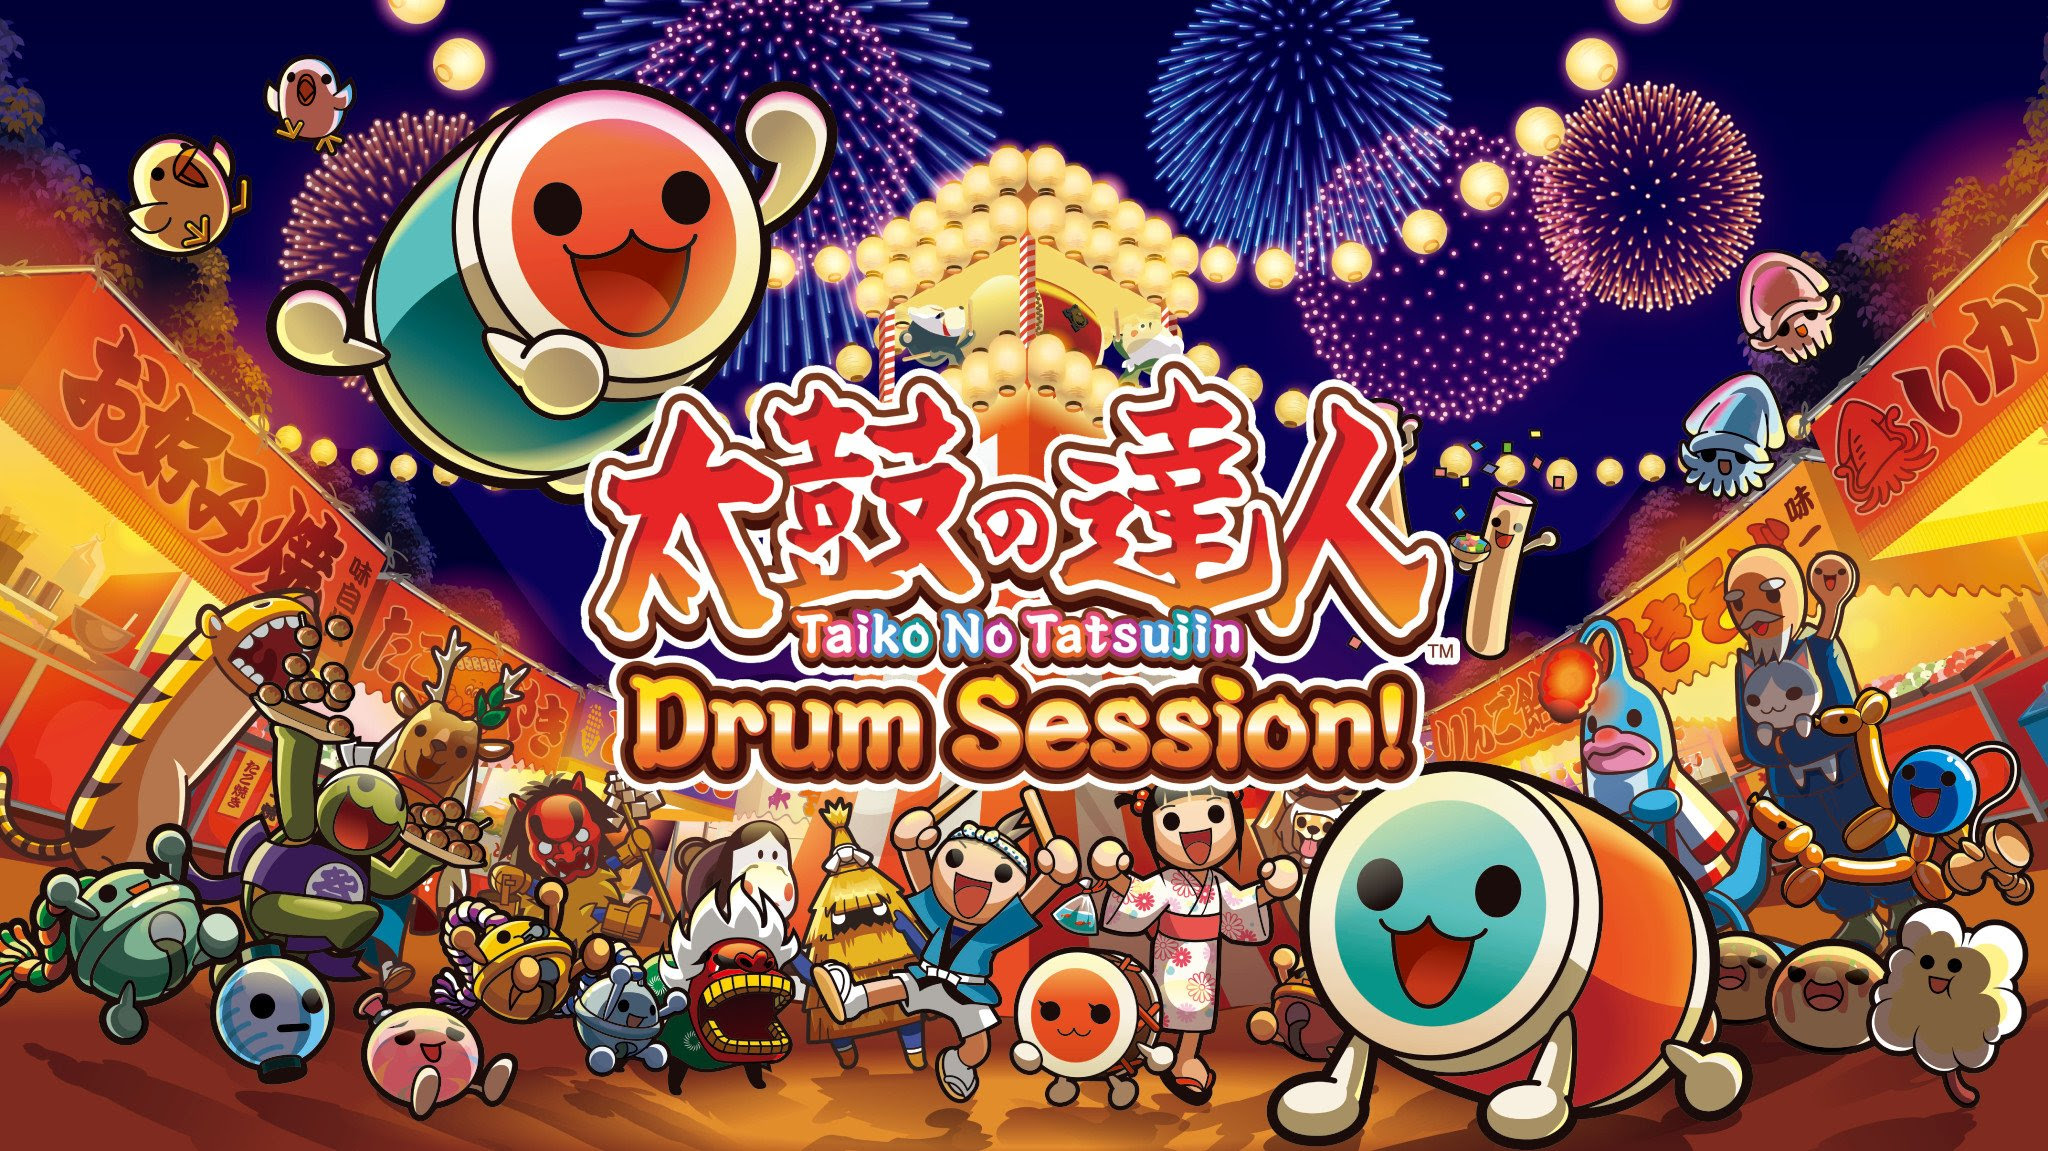 Holy crap, Taiko no Tatsujin is getting an English release screenshot